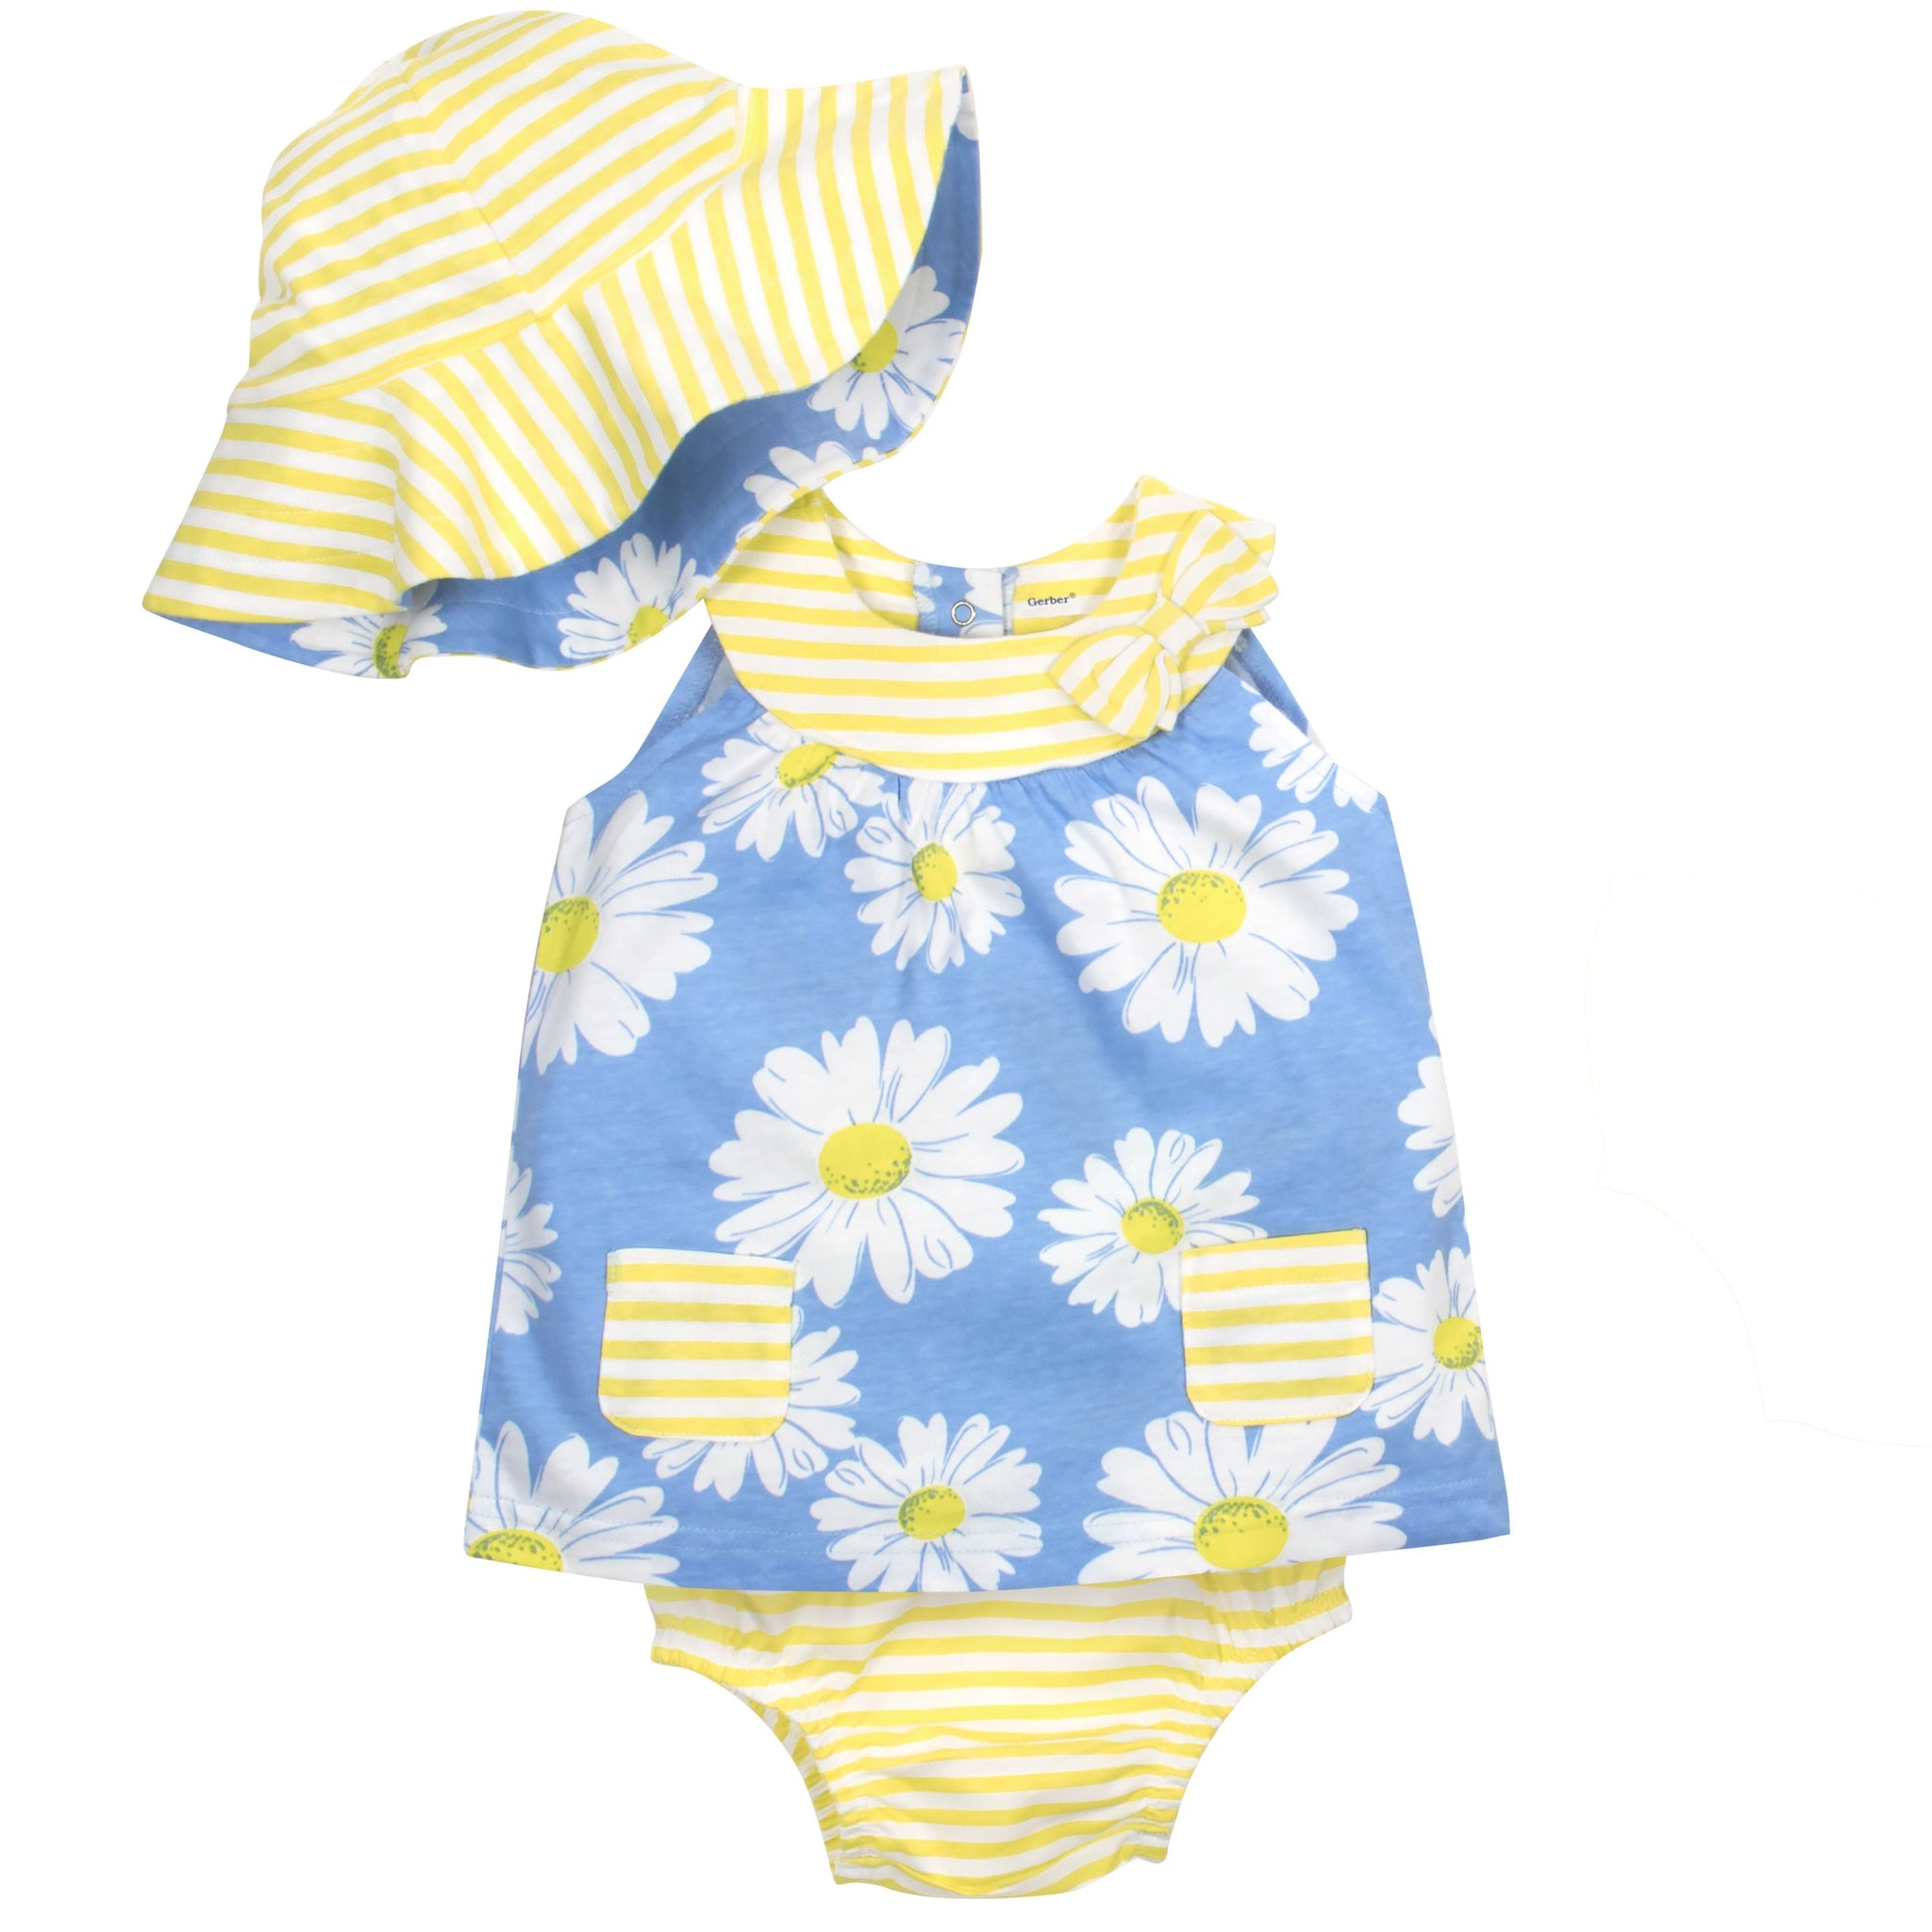 Gerber Girls' 3-Piece Dress, Bloomer and Hat Set, daisies